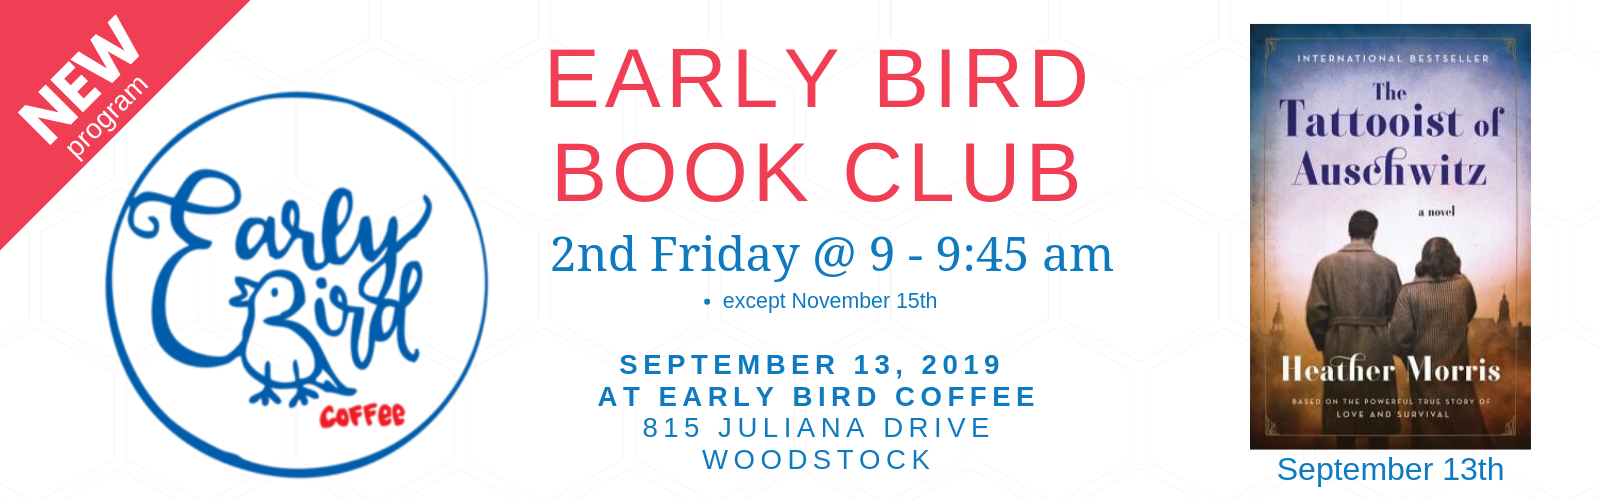 Early Birds Book Club - 2nd Friday of the Month at 9:00 to 9:45 am at Early Bird Coffee, 815 Juliana Drive, Woodstock beginning September 13, 2019